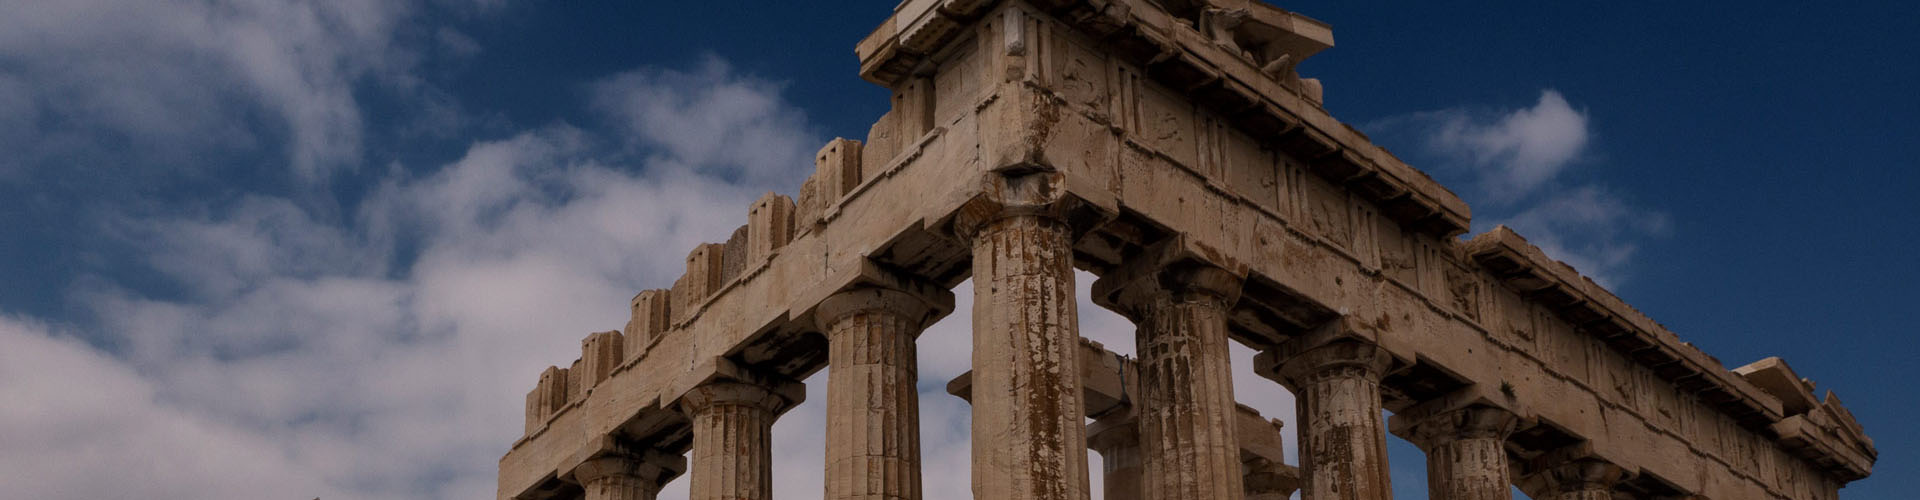 The Parthenon - Acropolis - STARLITE top